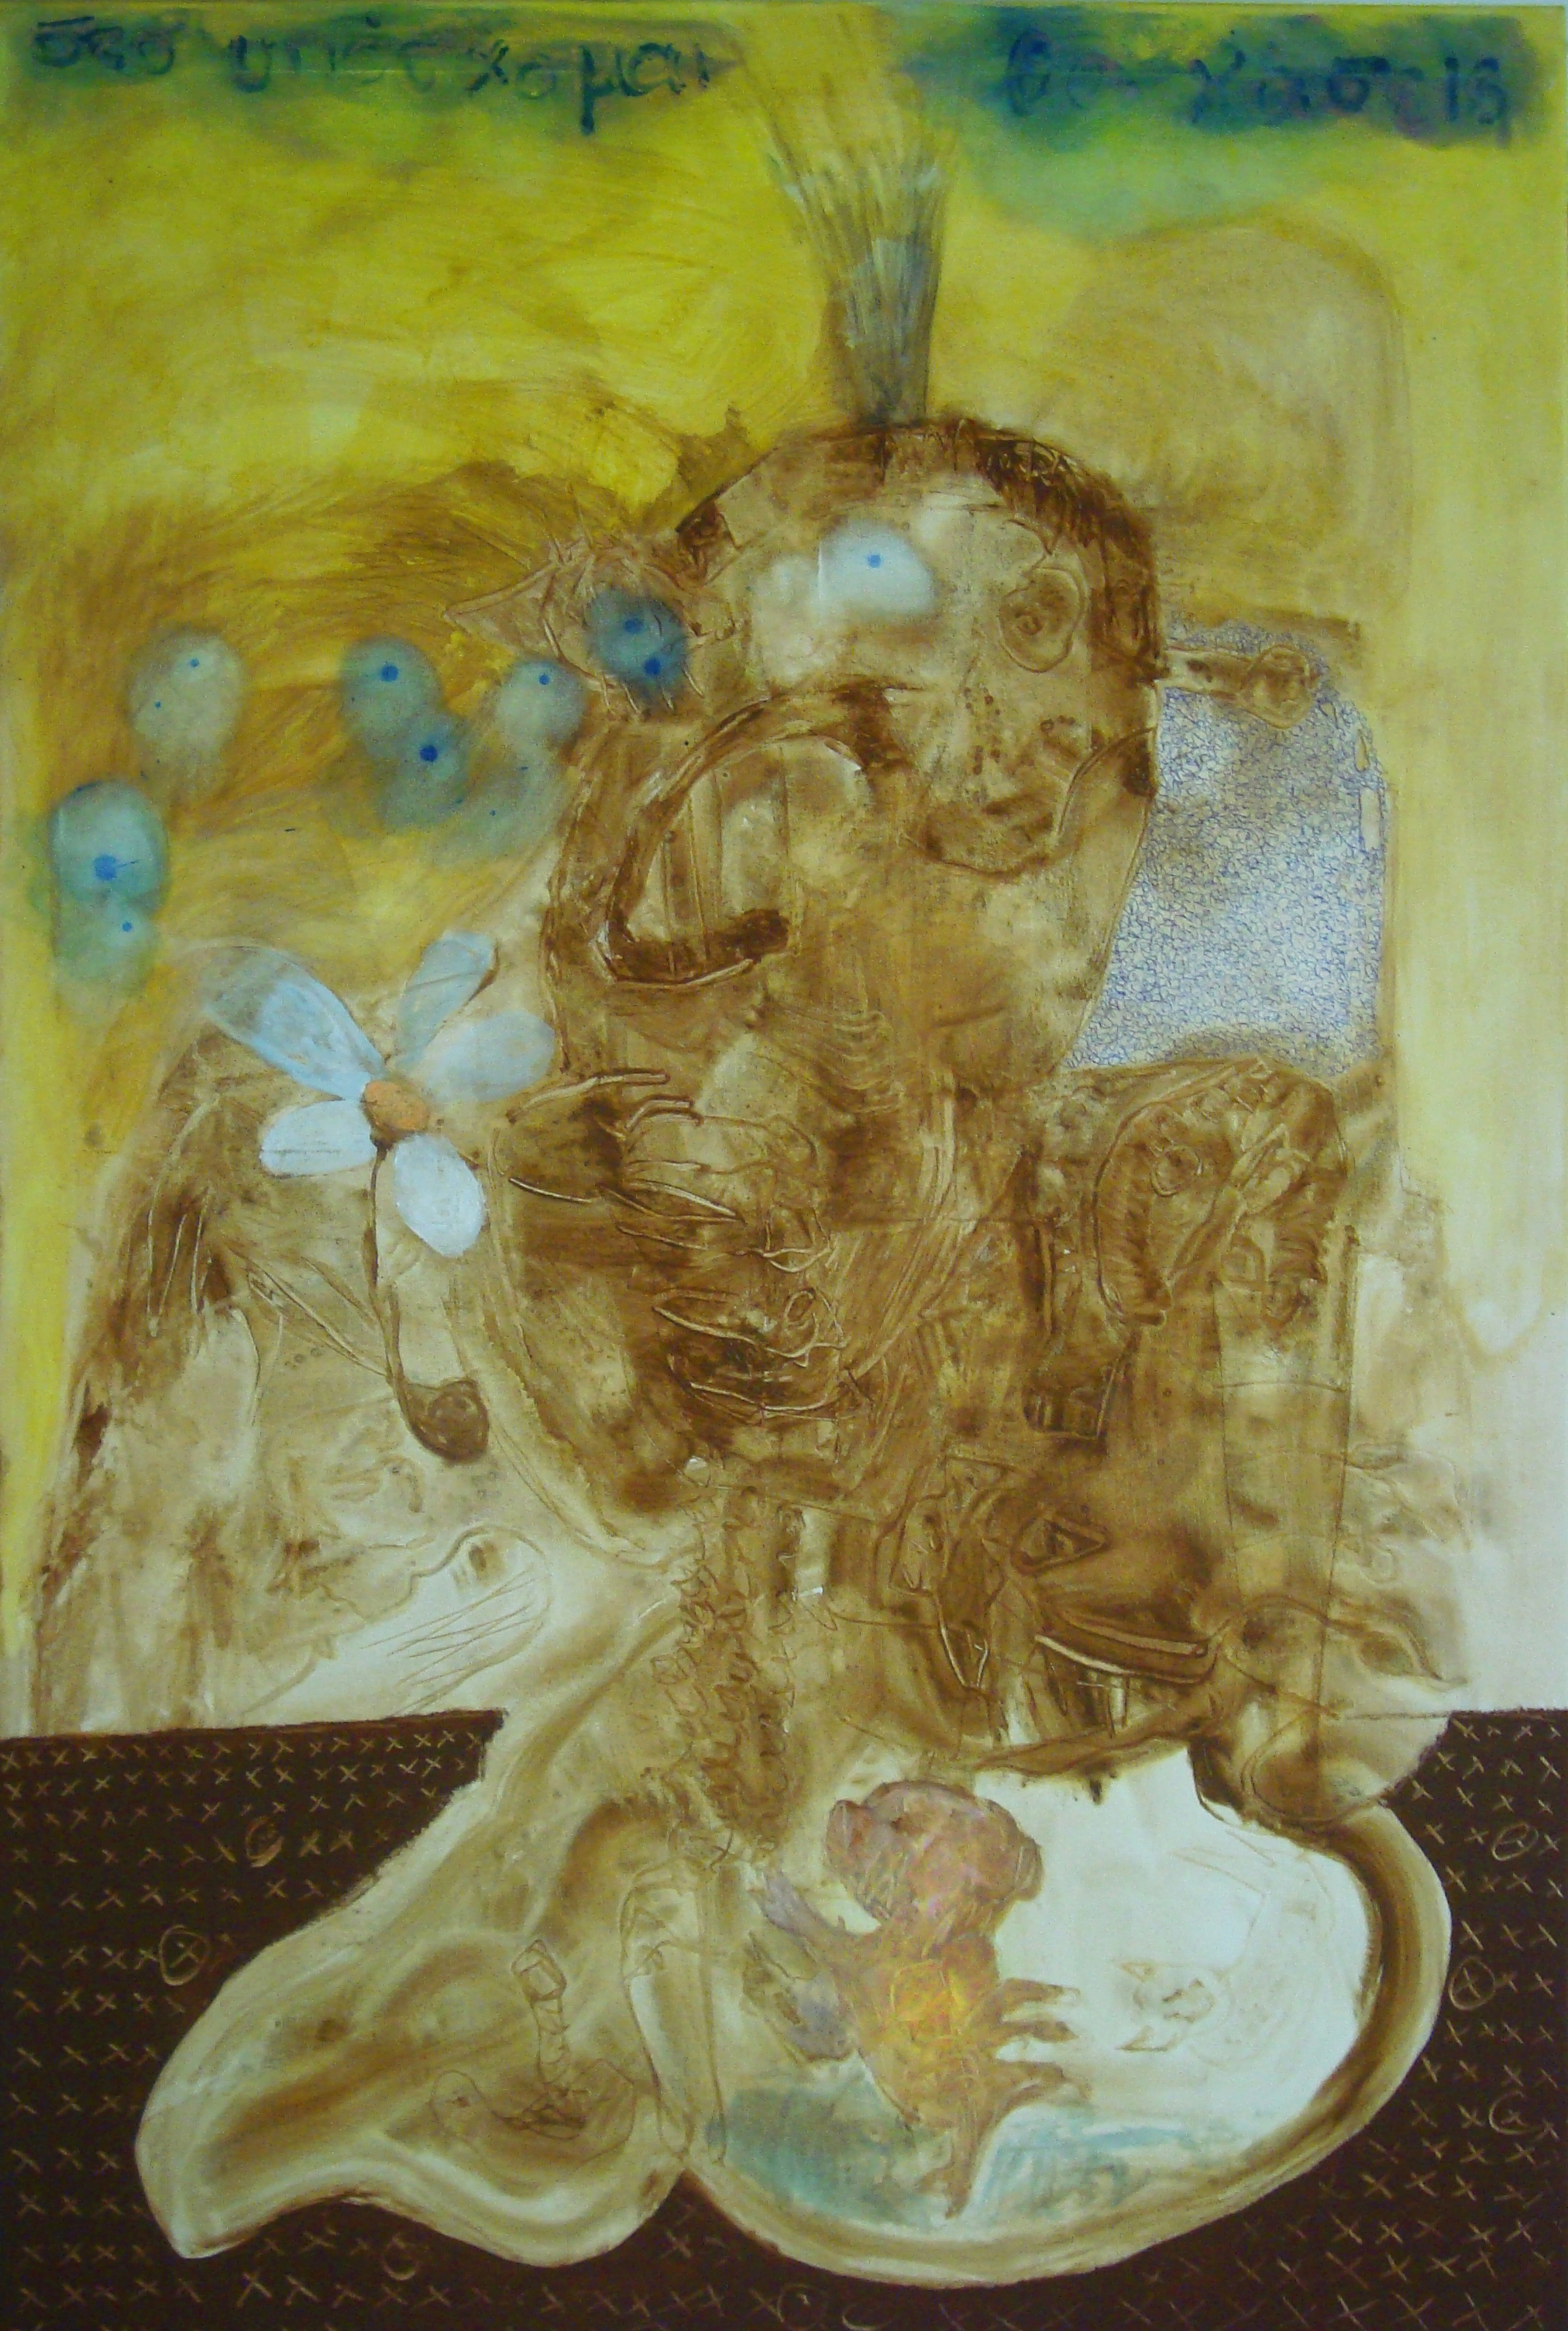 I promise you will lose artwork by Evangelos Papapostolou - art listed for sale on Artplode